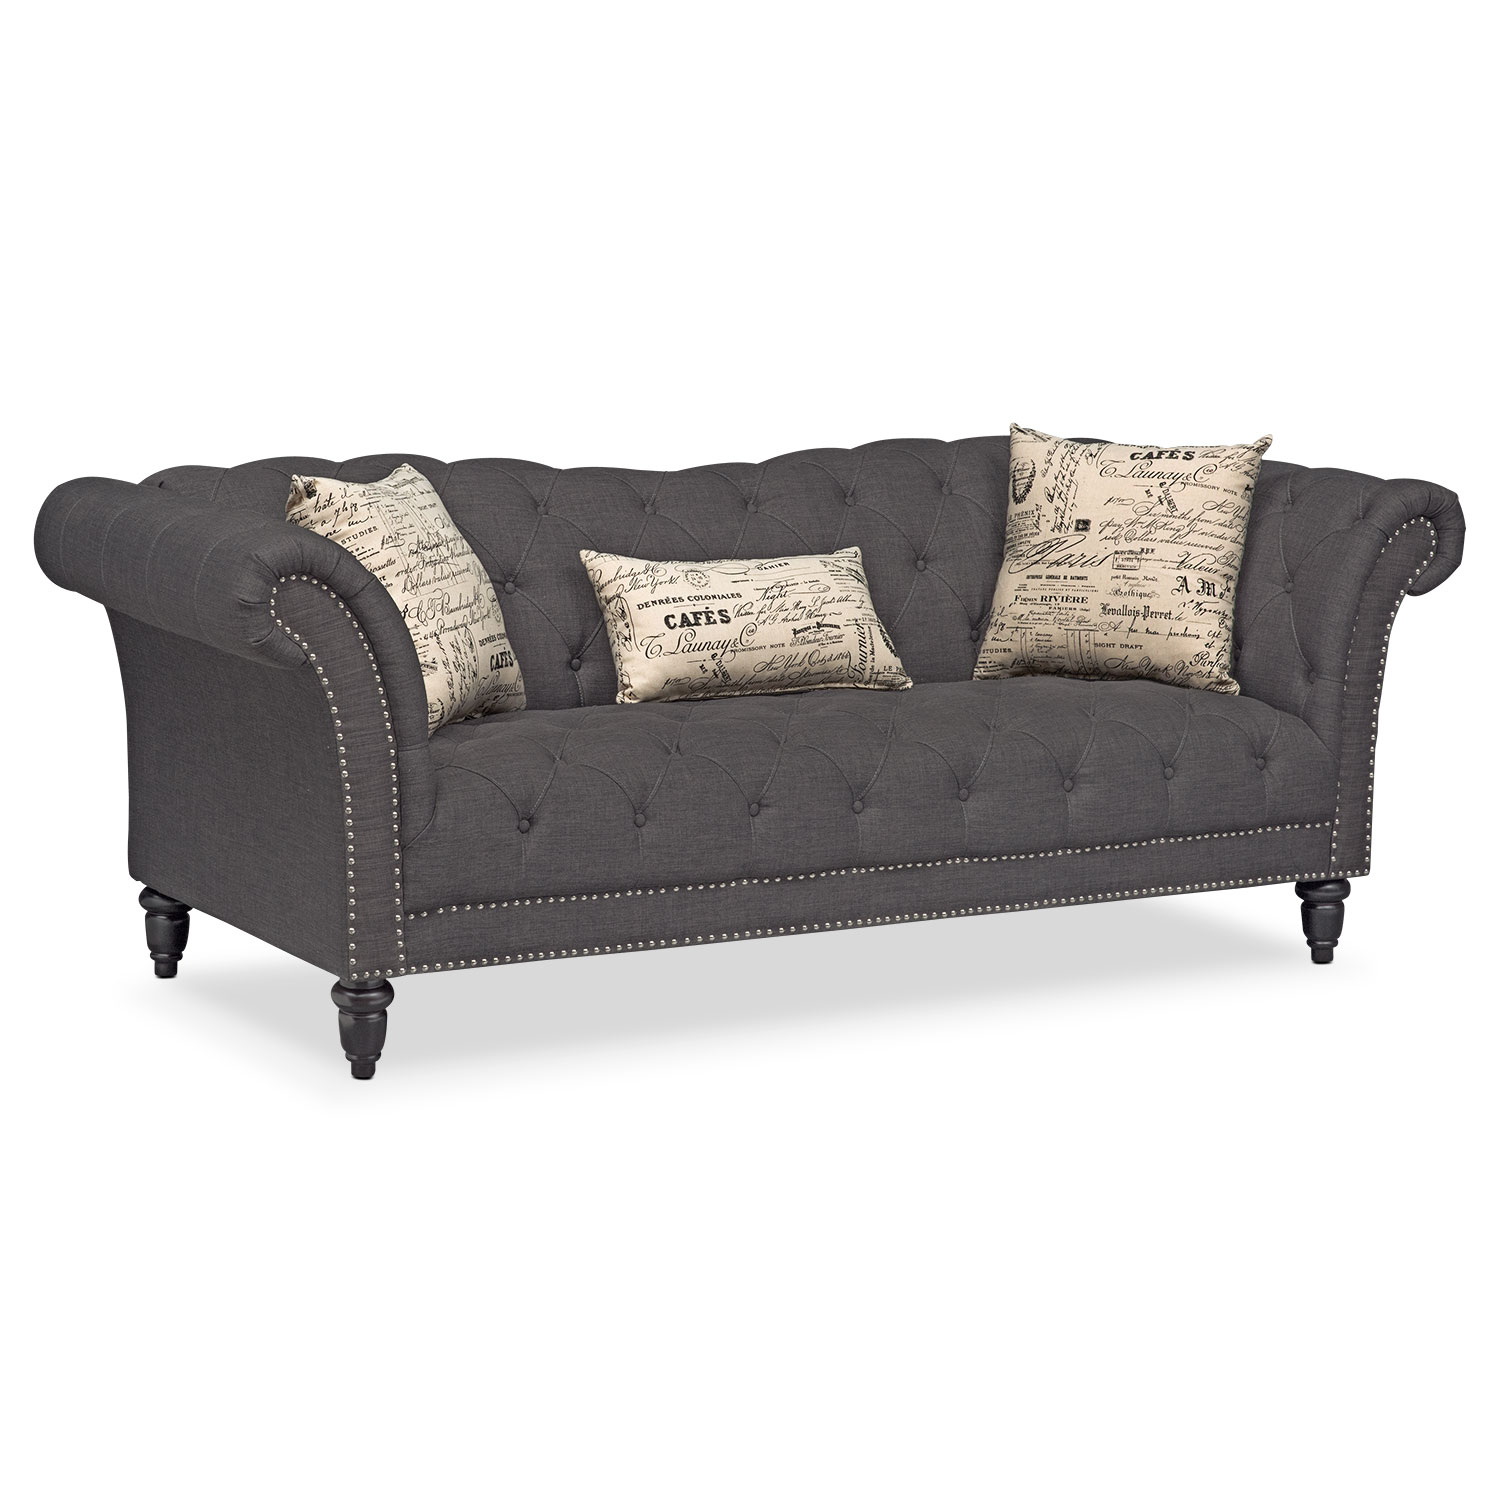 Marisol Sofa - Charcoal | American Signature Furniture